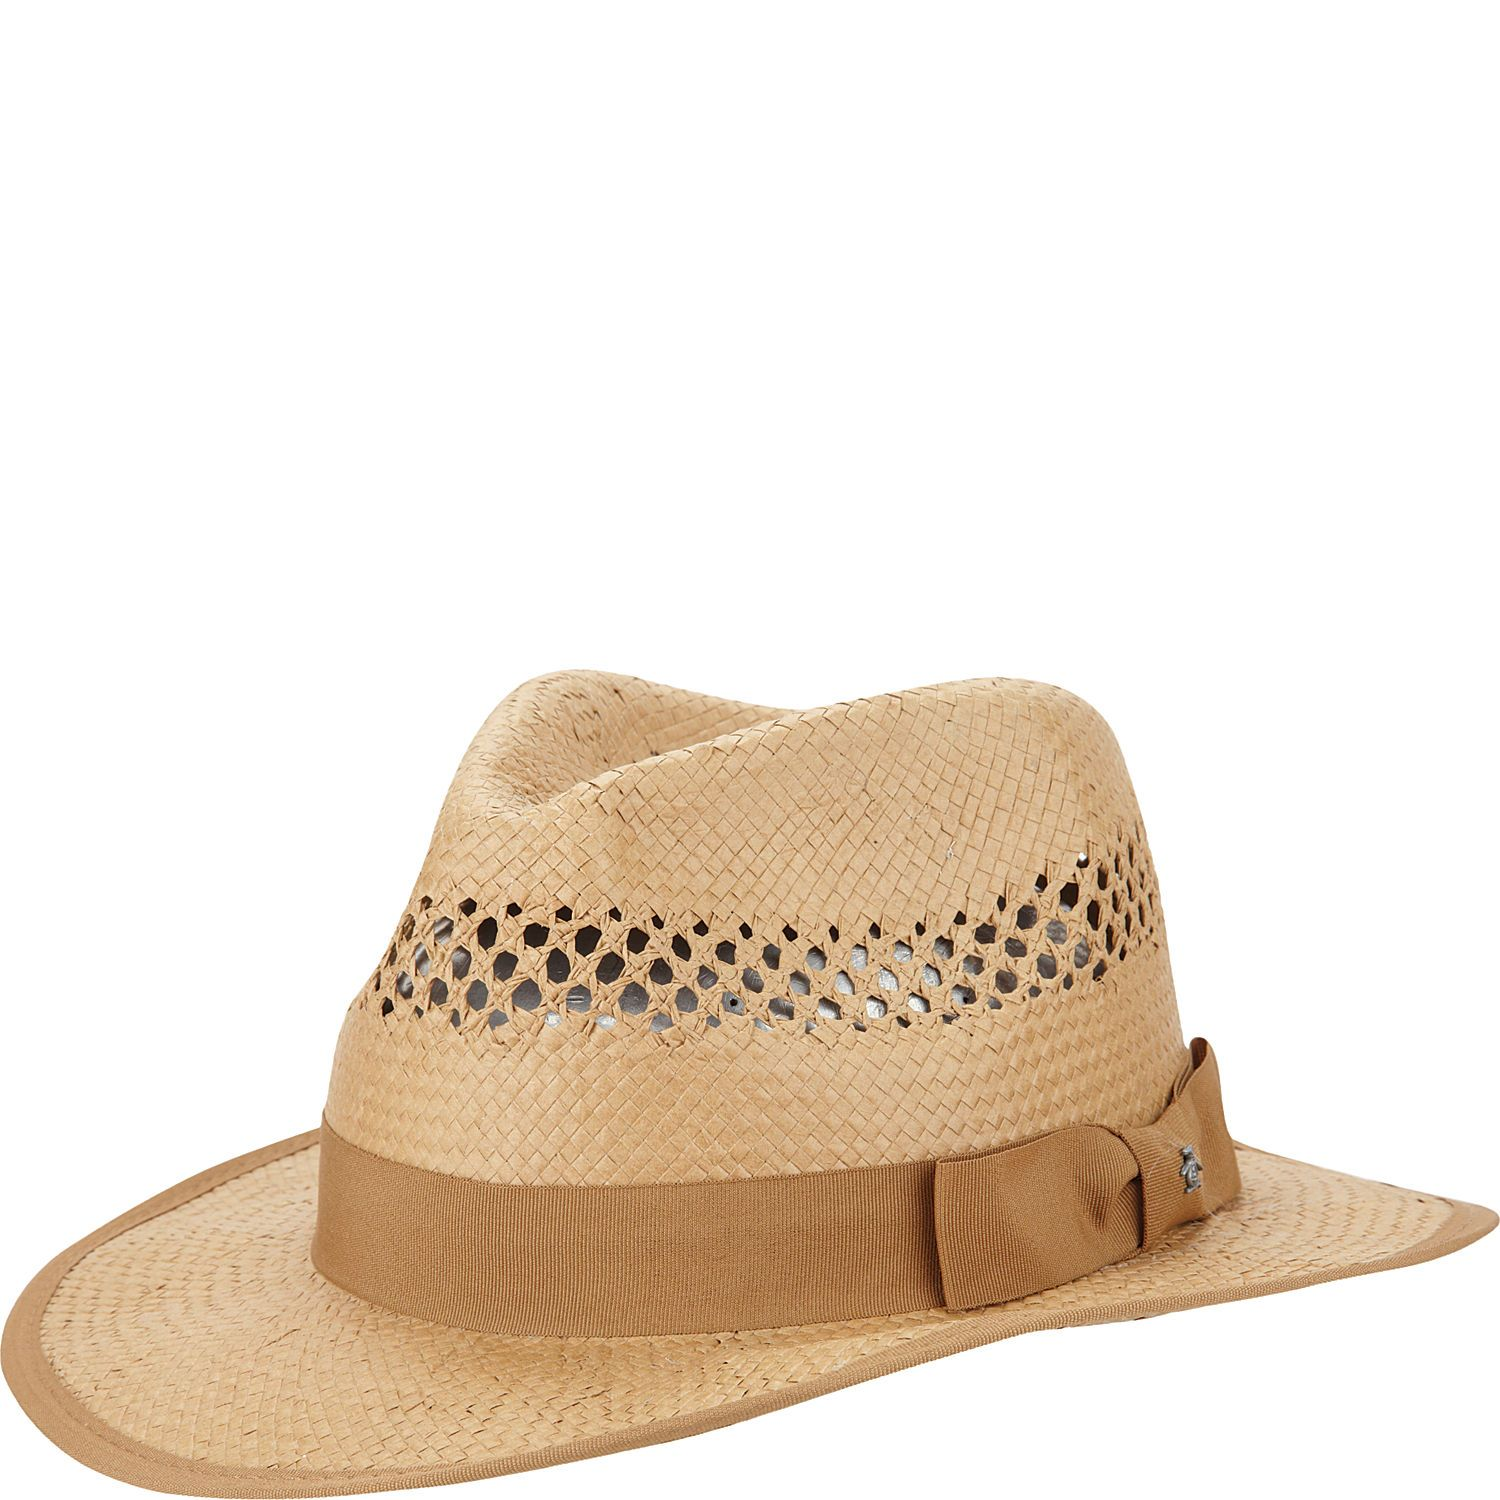 http://www.ebags.com/product/original-penguin/lazaro-fedora/294549?productid=10364405